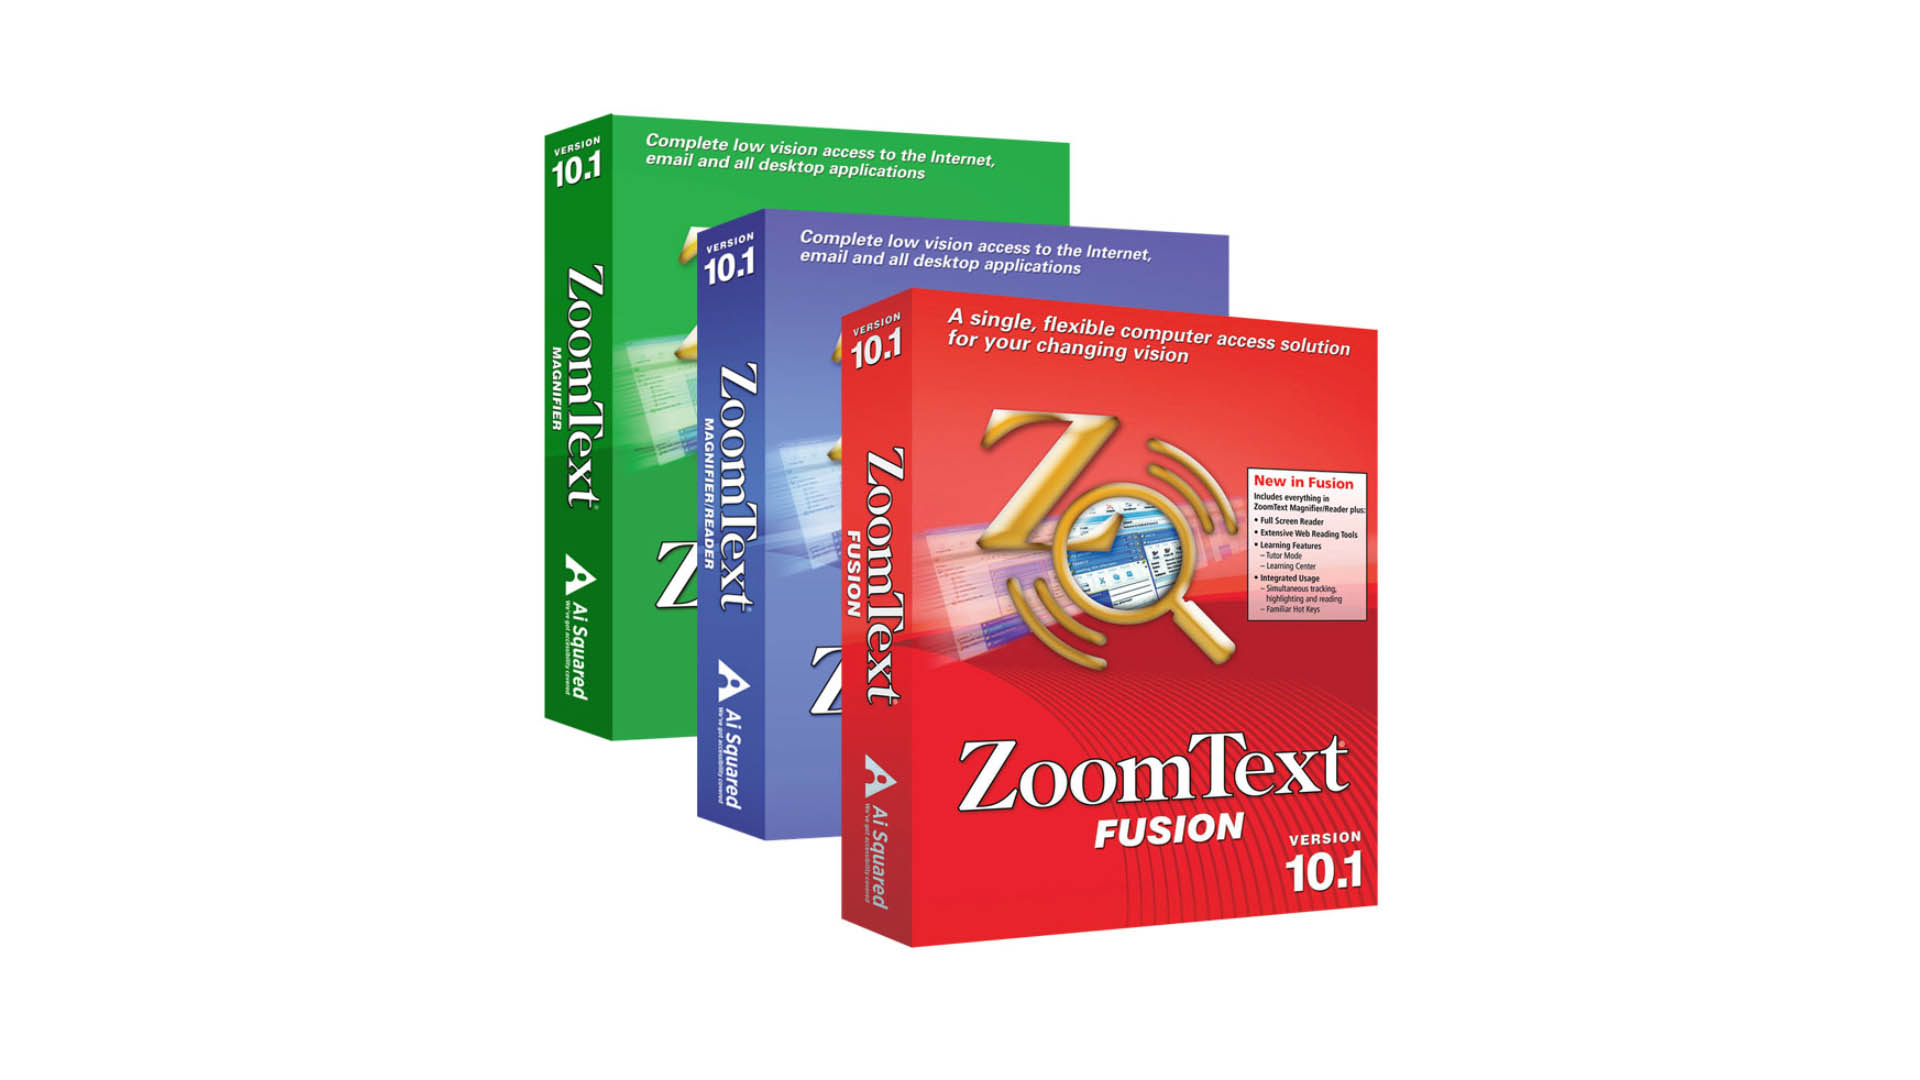 The ZoomText software is pictured as a red box with a golden magnifying glass. The magnifying glass is oriented NorthWest and in its direction is a golden Z.